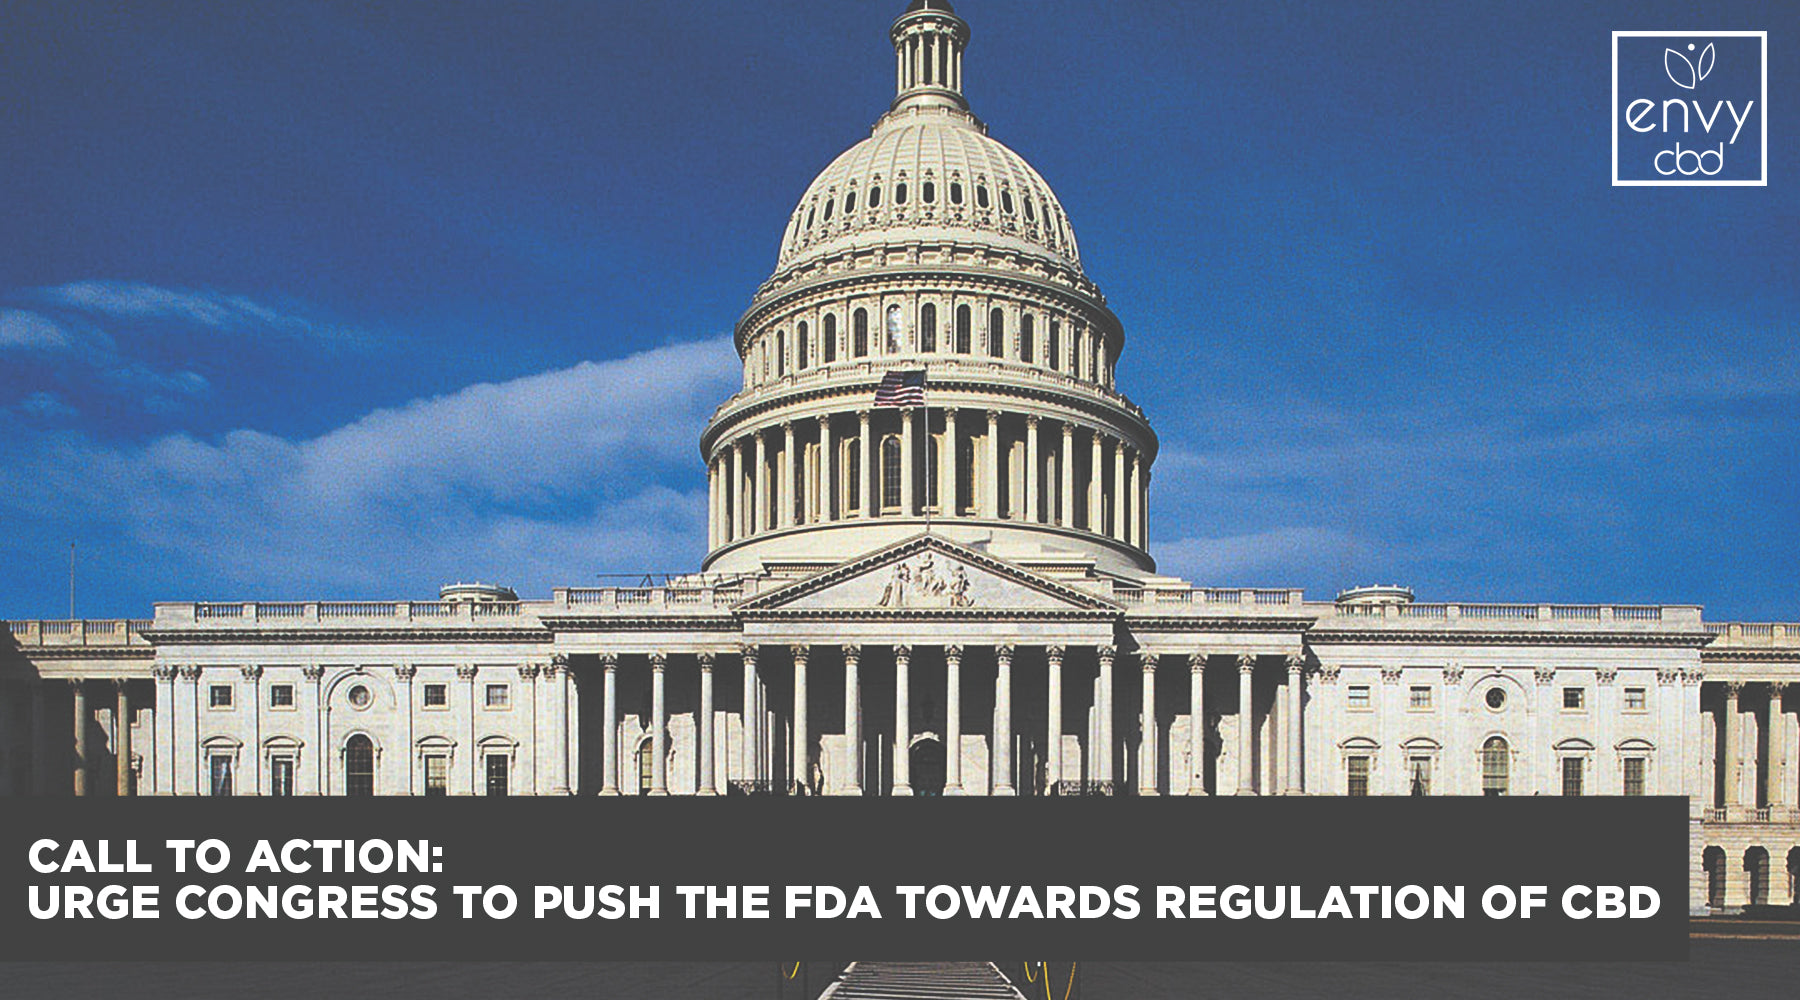 CALL TO ACTION: Urge Congress to Push the FDA Towards Regulation of CBD